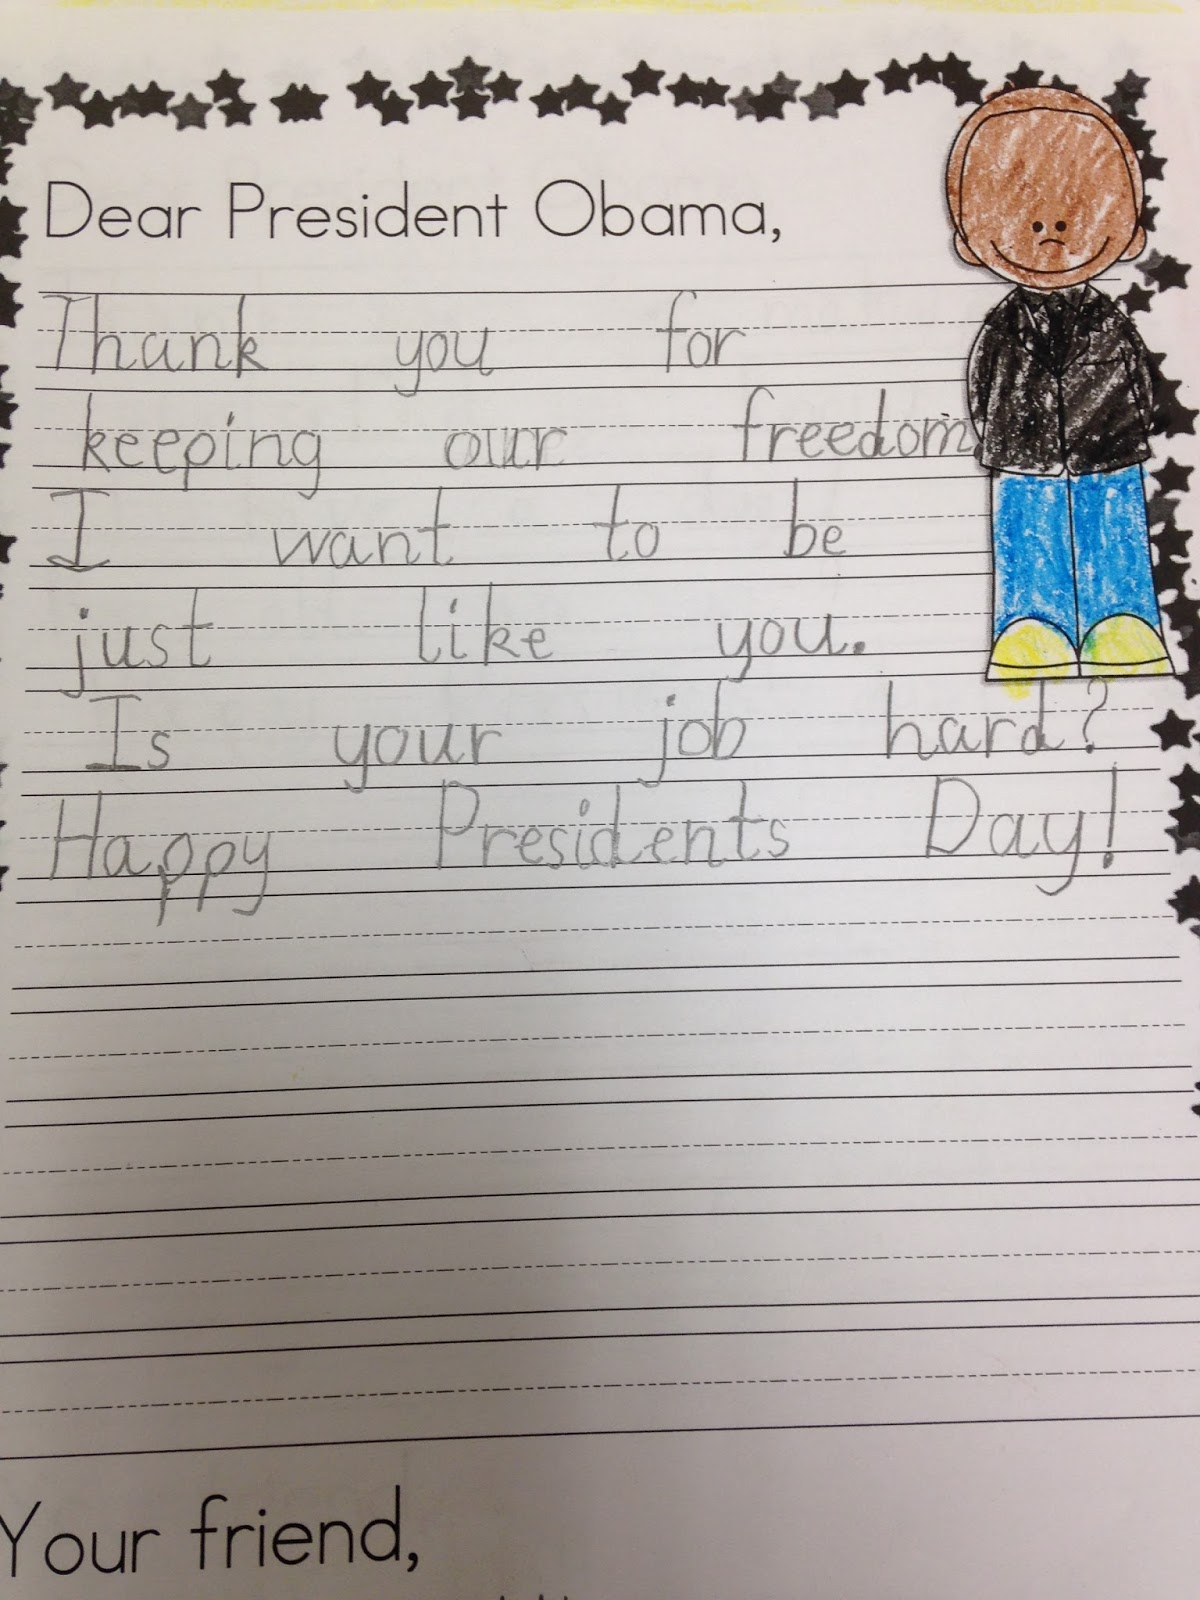 How To Write A Letter To President Obama Sample